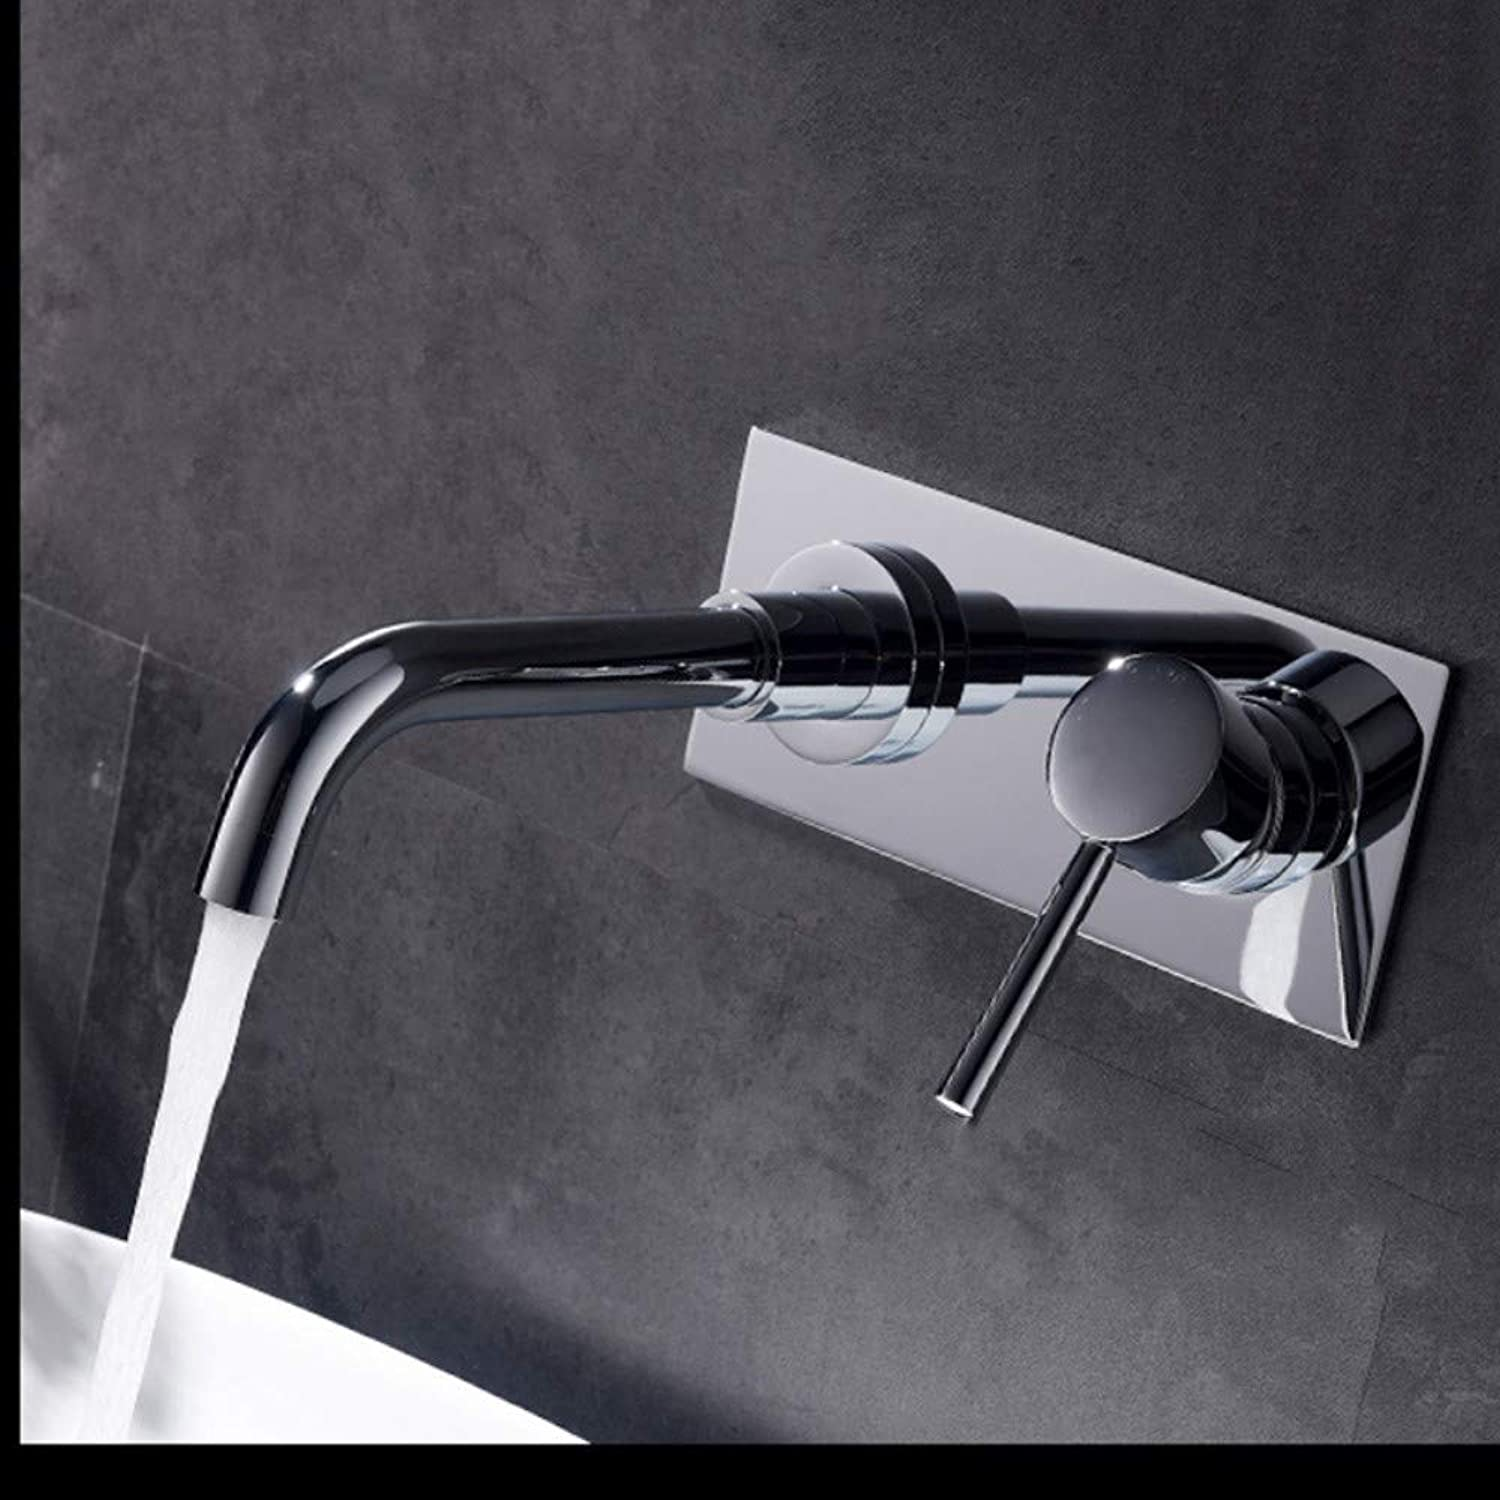 Taps Faucet Dark Wall-Mounted Copper Basin Faucet Black Bathroom Sink Hot and Cold Faucet, Chrome